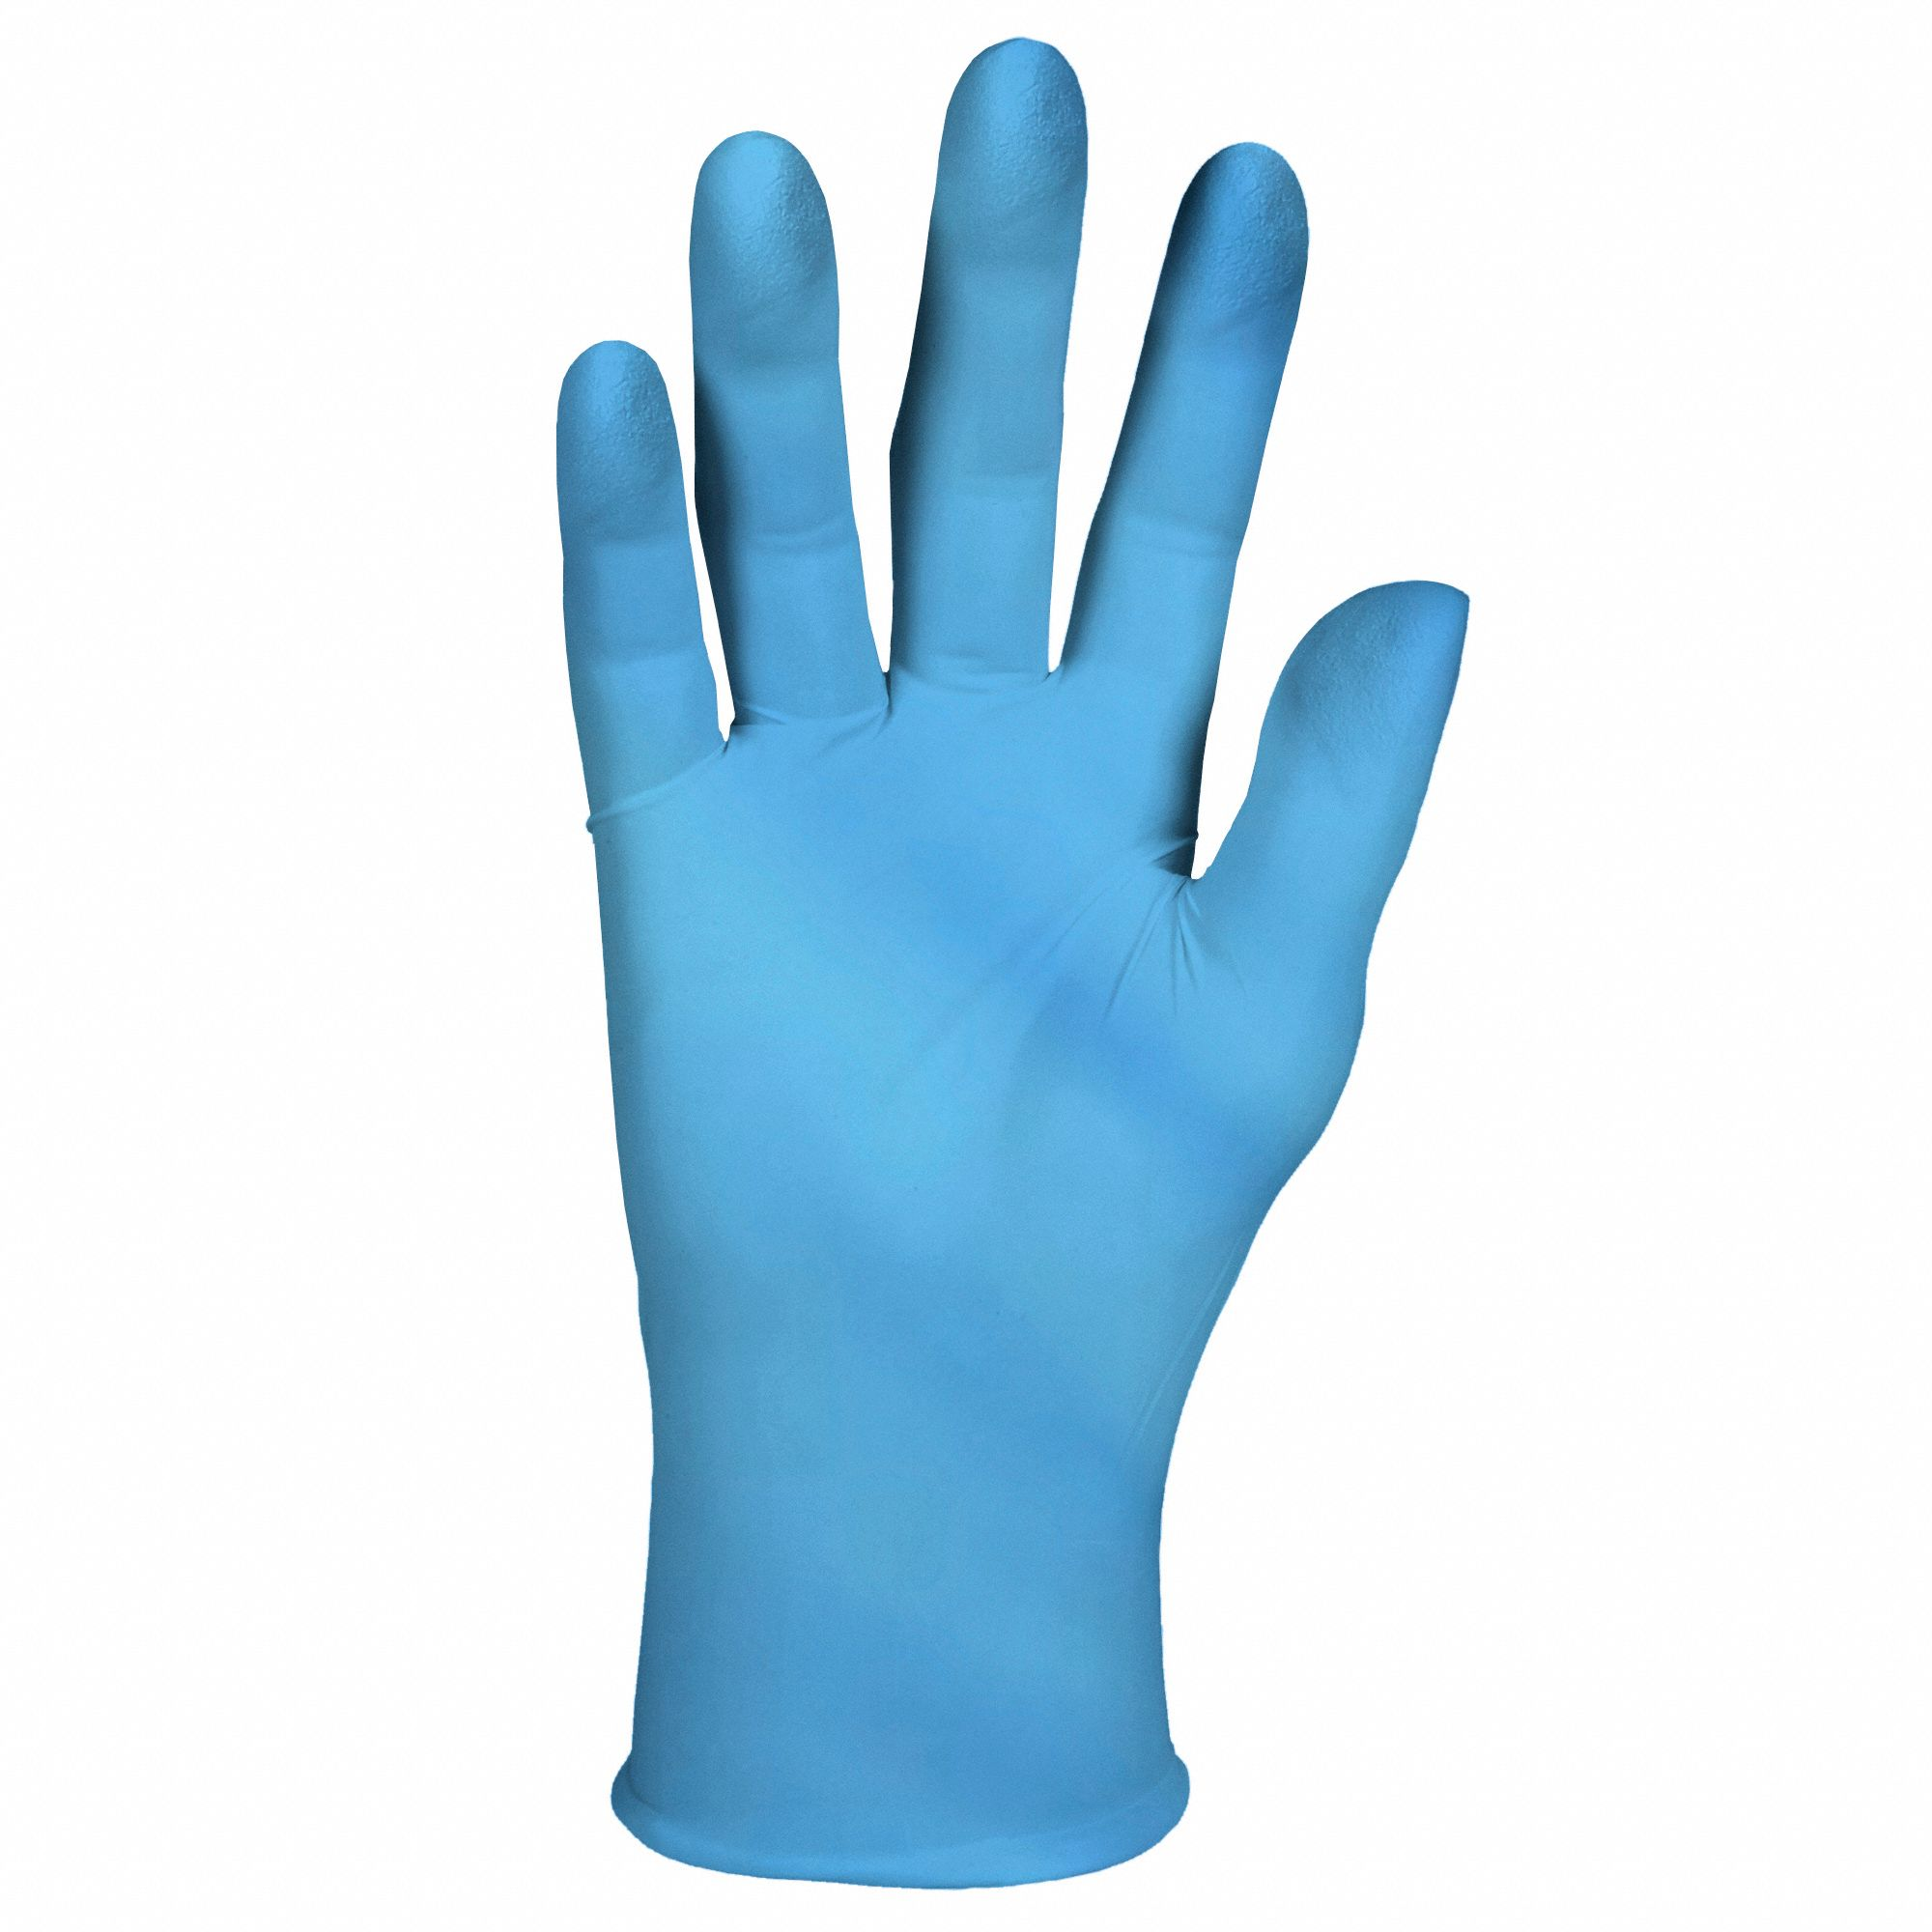 Nitrile,  Disposable Glove,  XL,  Powder-Free,  2.0 mil Palm Thickness